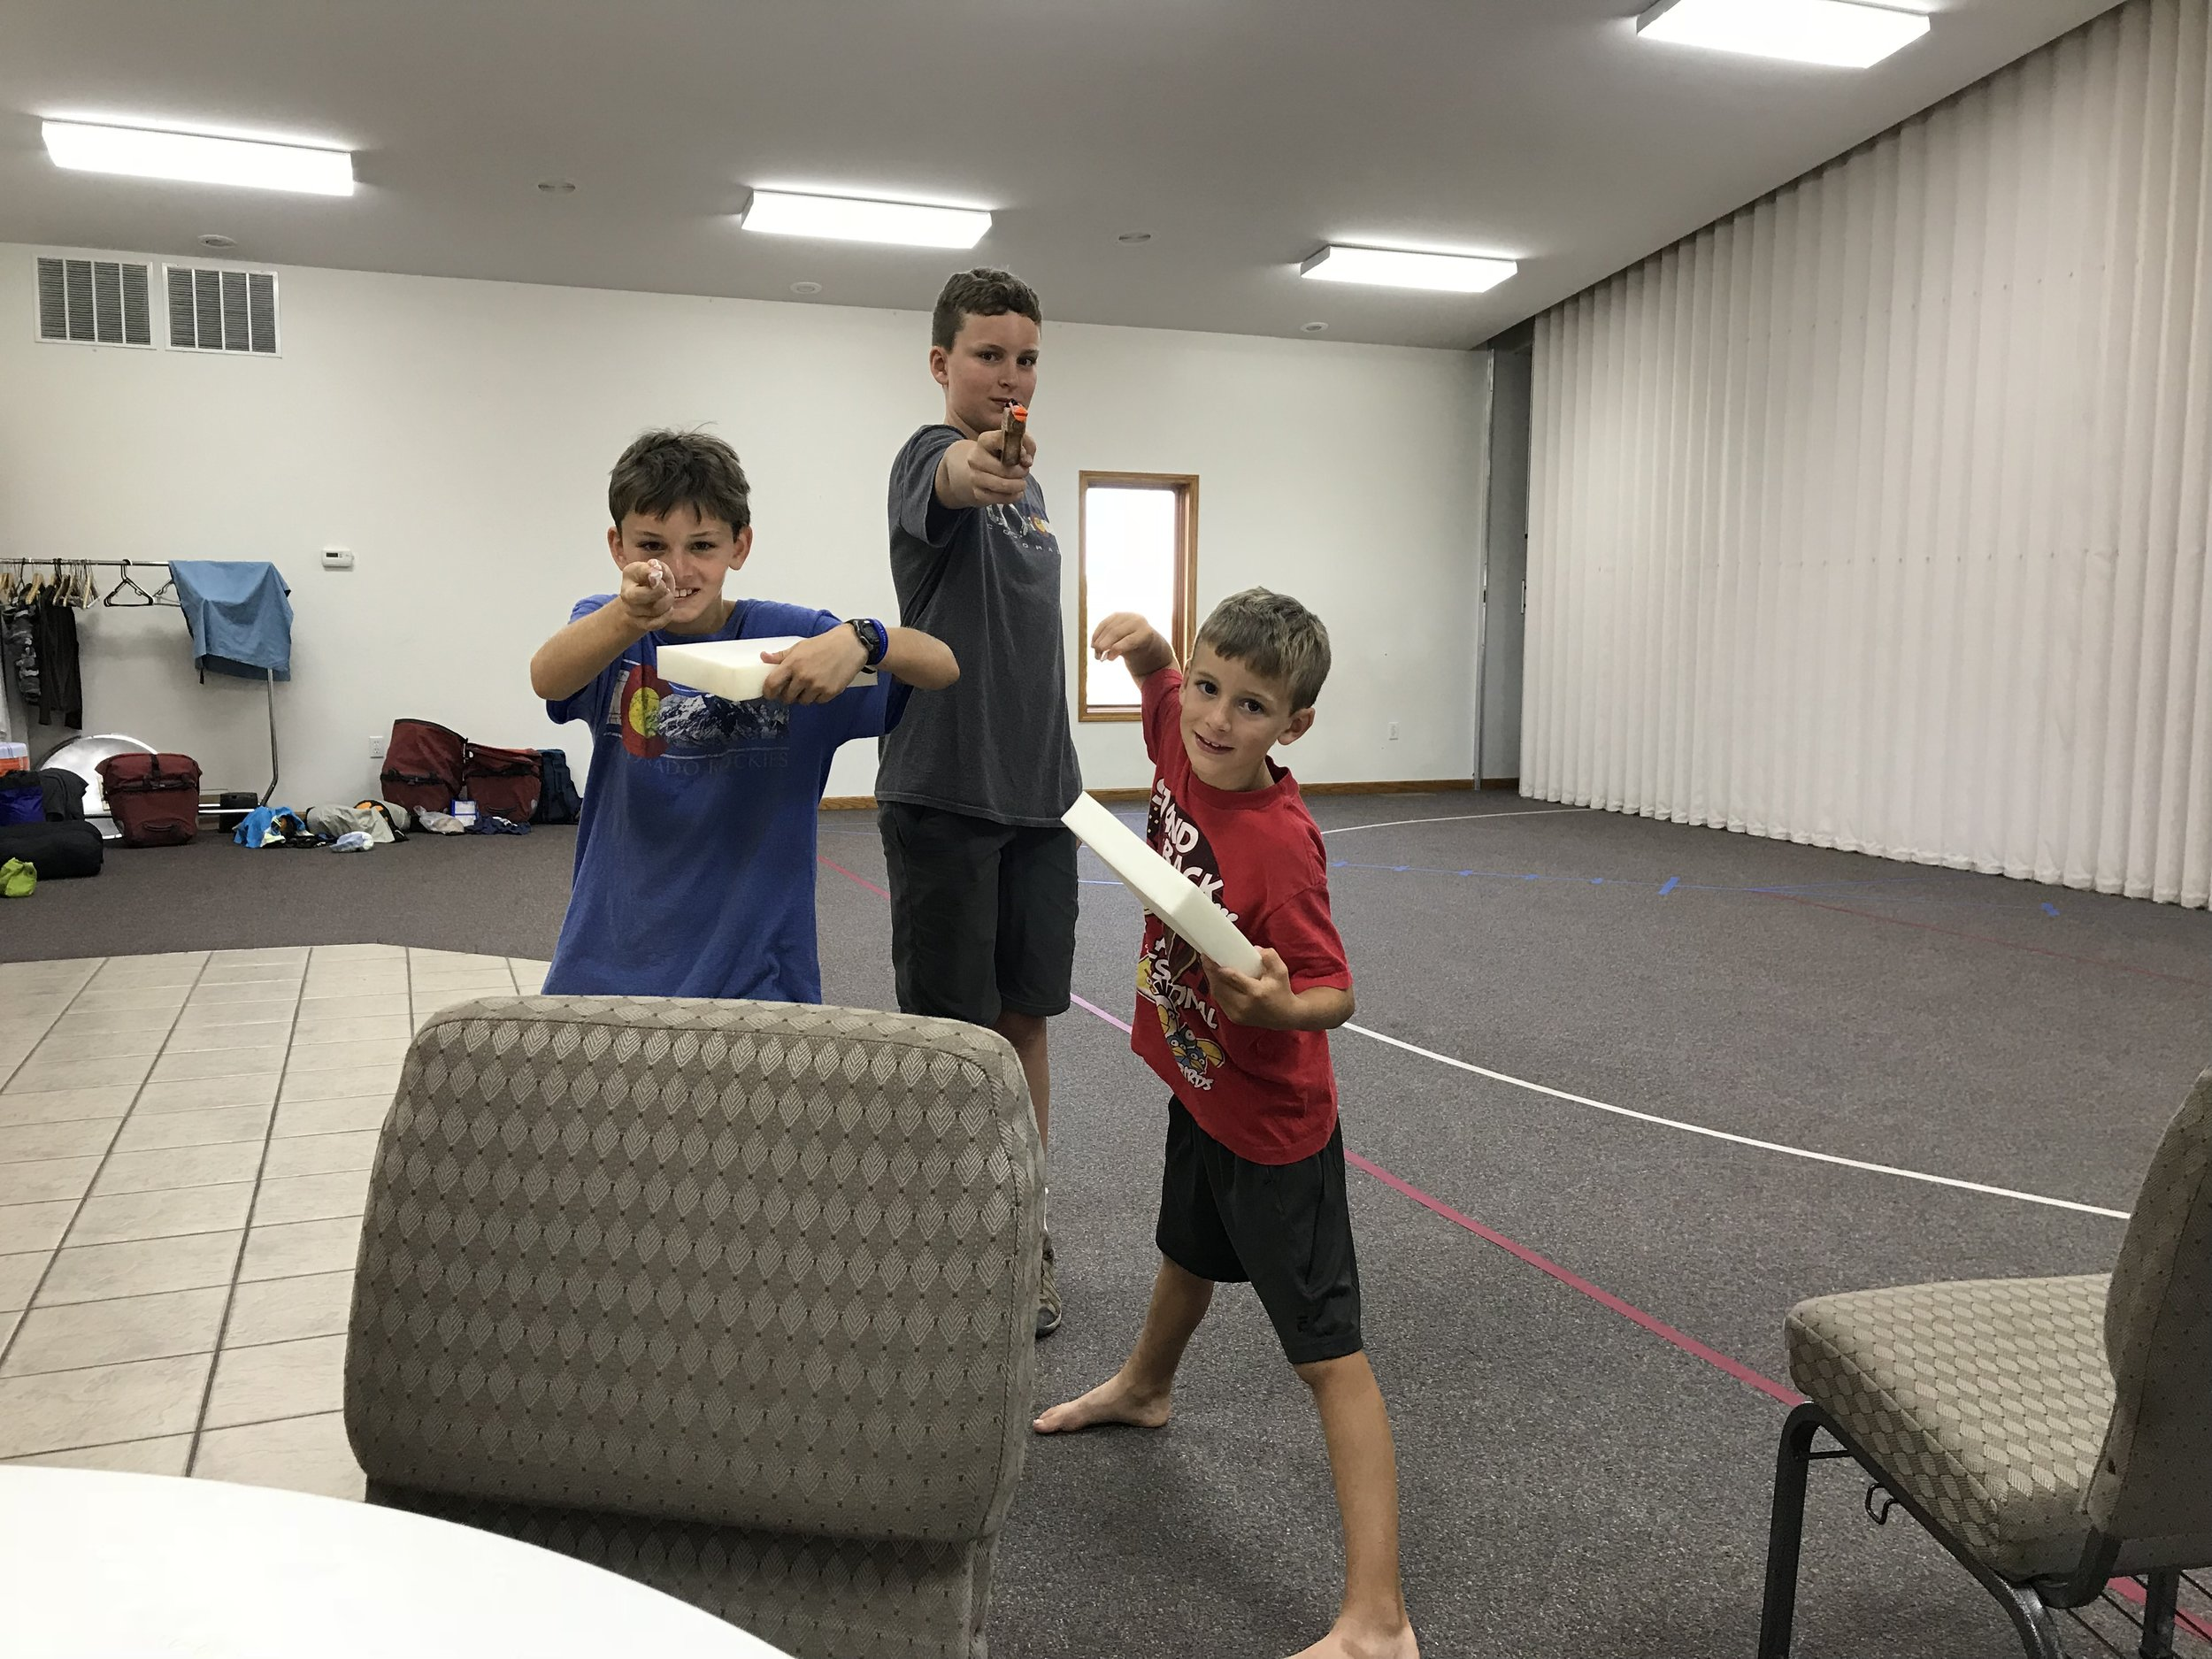 The boys got into a rubber band war in the church's common space (using a rubber band gun Russell had recently bought).